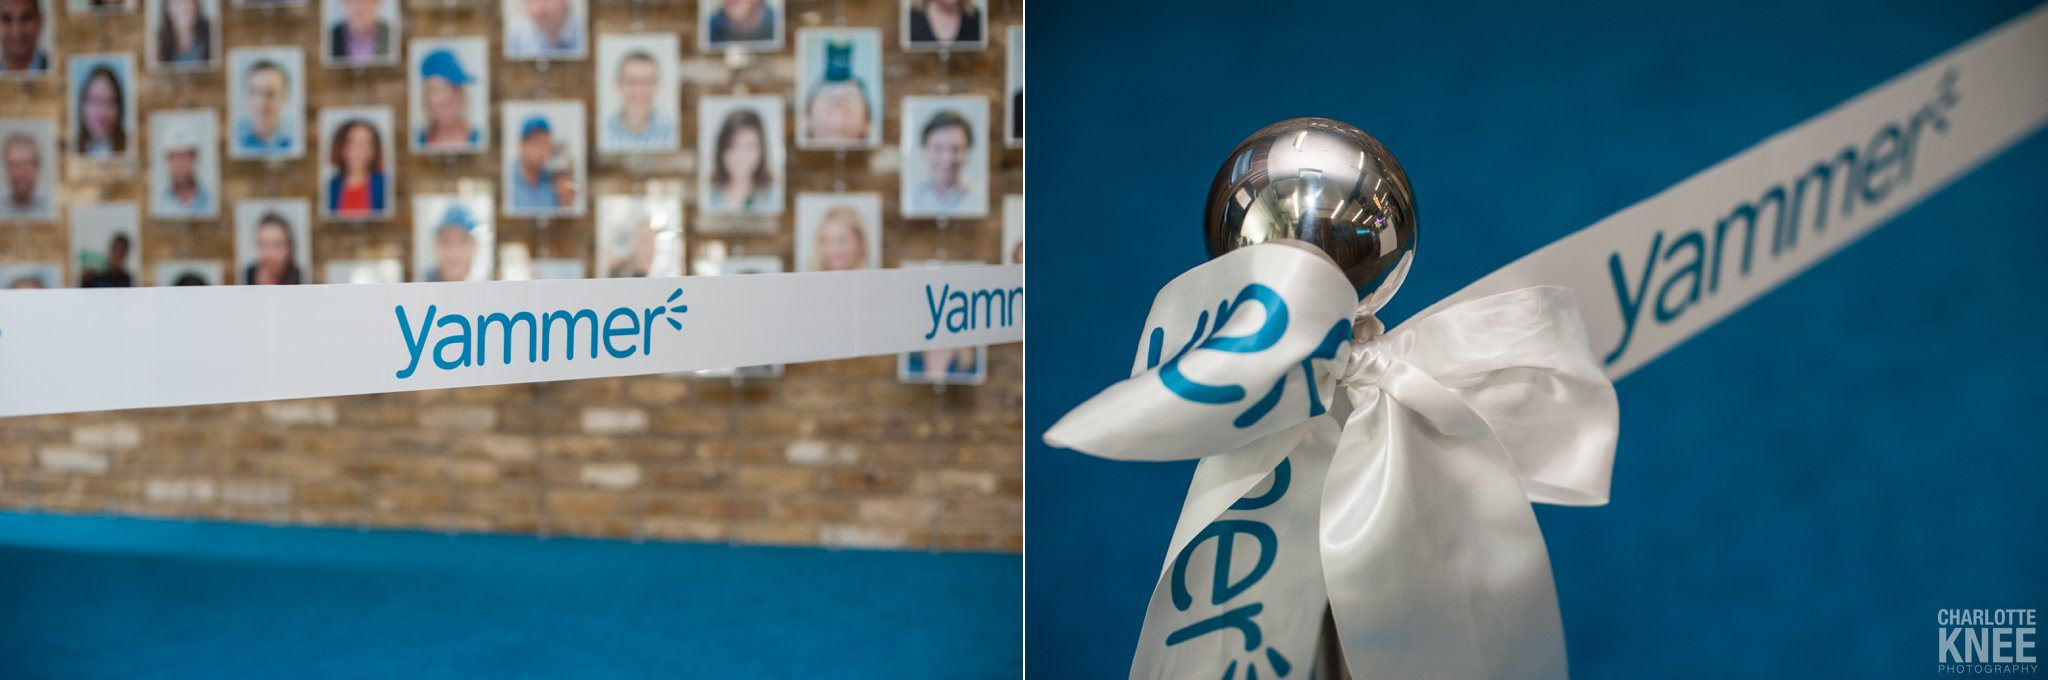 Event-Photography-Yammer-Microsoft-Charlotte-Knee-Photography_0002.jpg